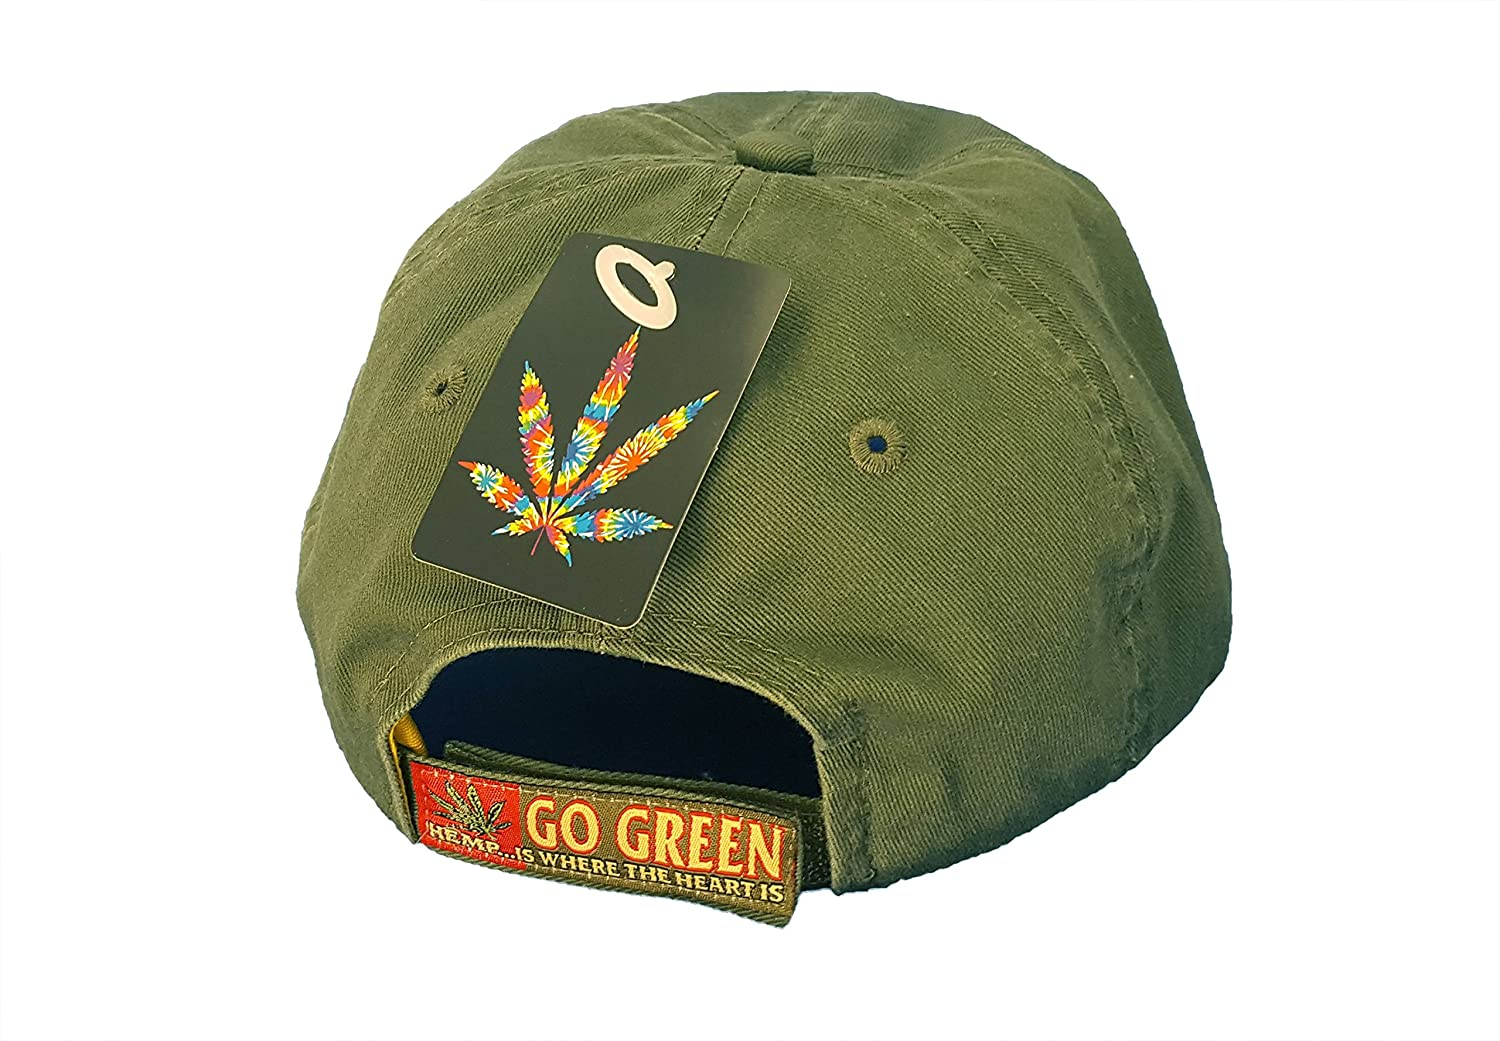 1c4f7287be4c Amazon.com  Hemp is Where the Heart Is Weed Embroidered Ball Cap Hat Cotton  Blend Adjustable  Sports   Outdoors